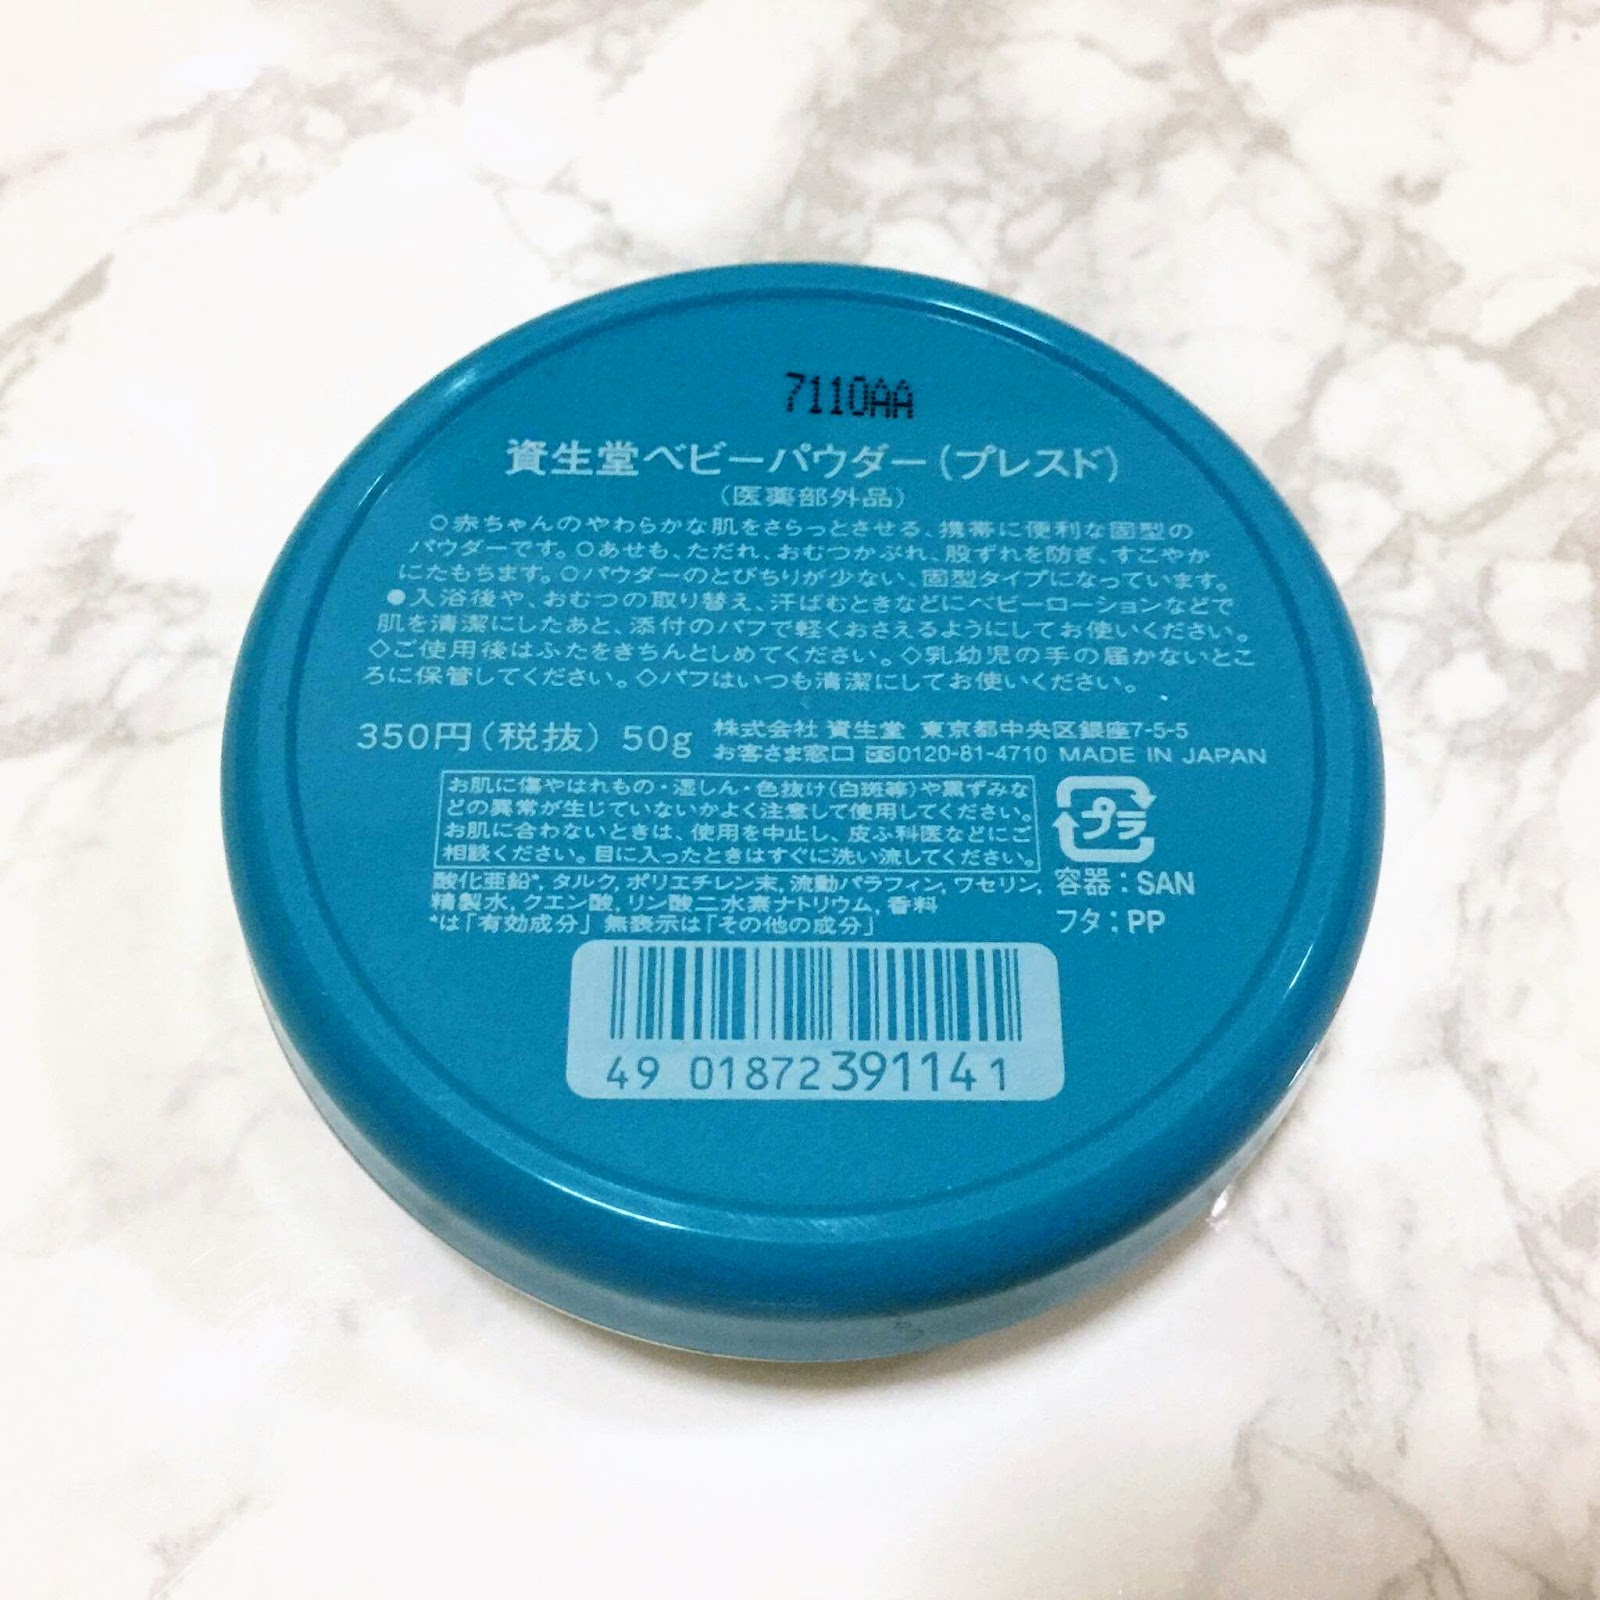 Shiseido Medicated Baby Pressed Powder Review Joy To The